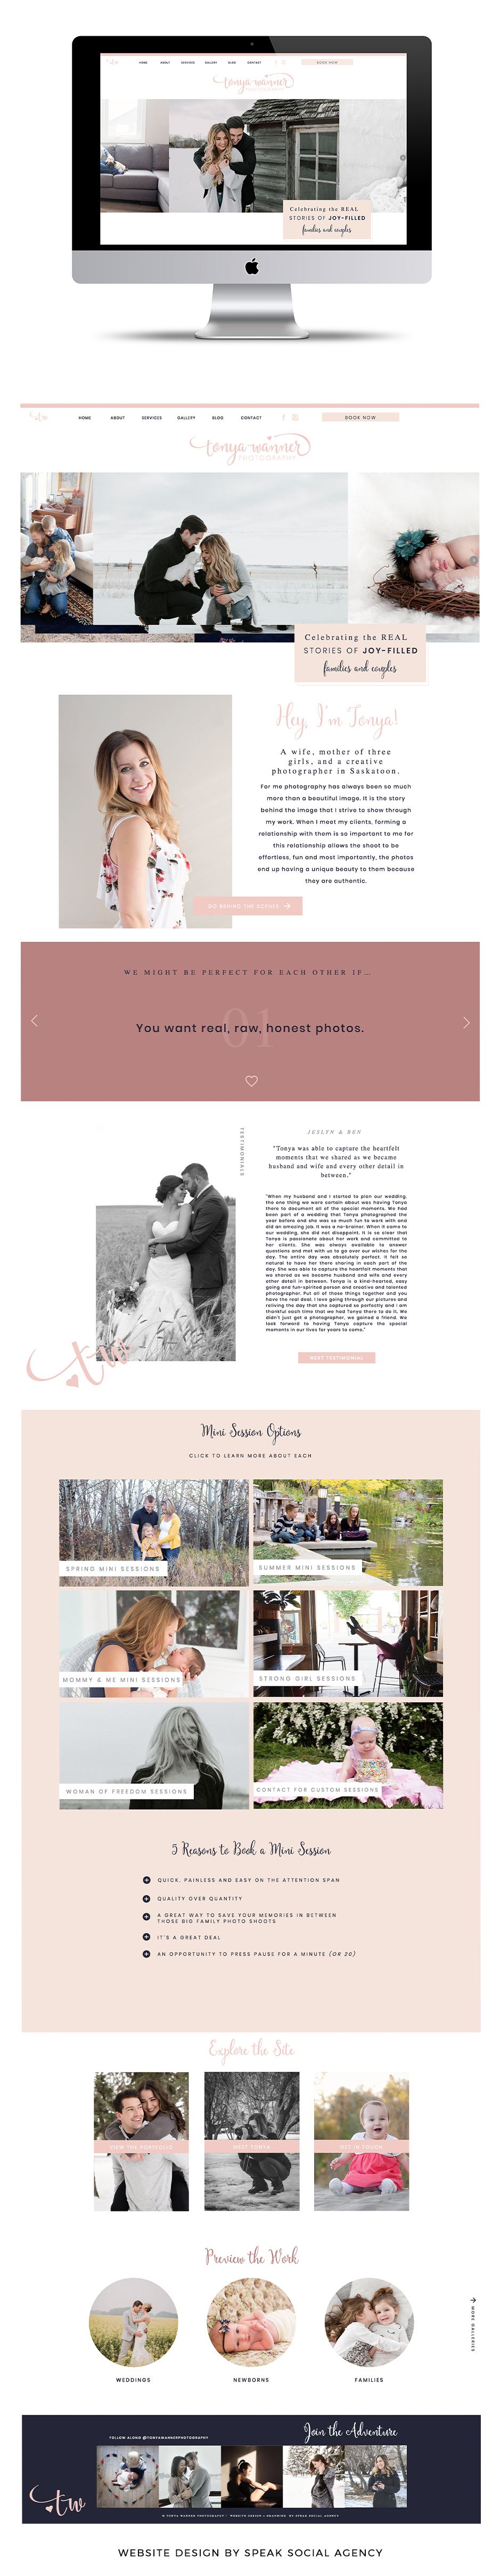 Showit website design for photographer - feminine, pink website for newborn, maternity and family photographer